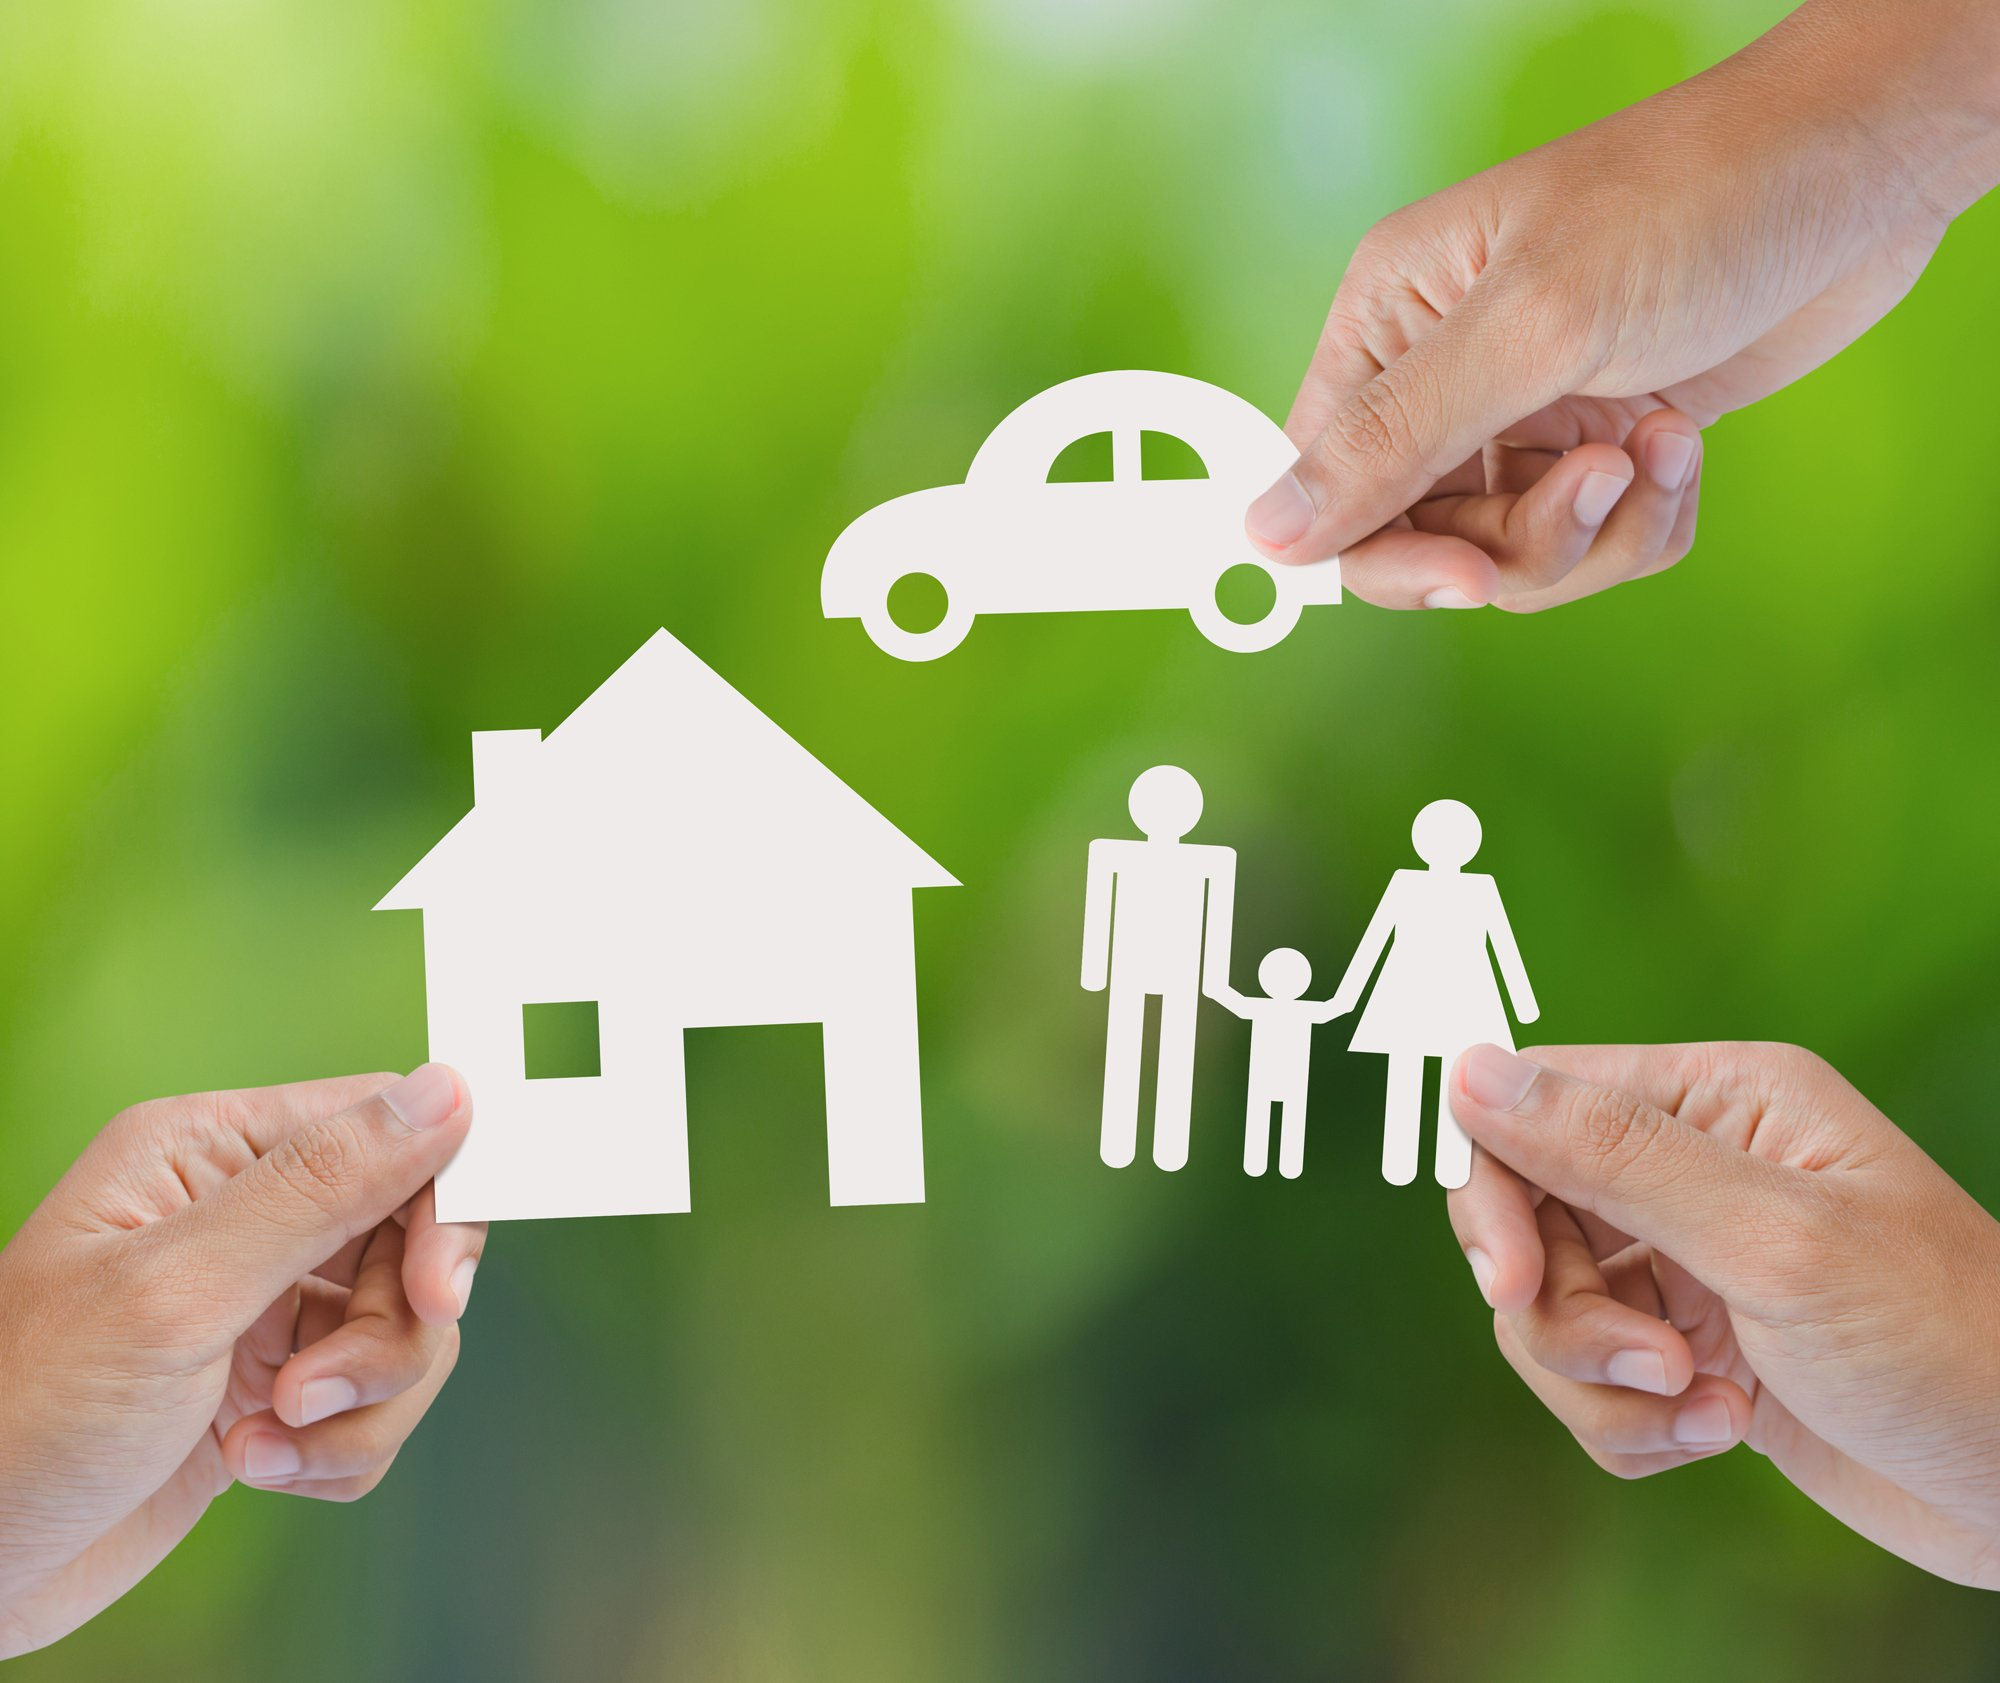 Conceptual image with hands holding paper cutouts of a house, family and car